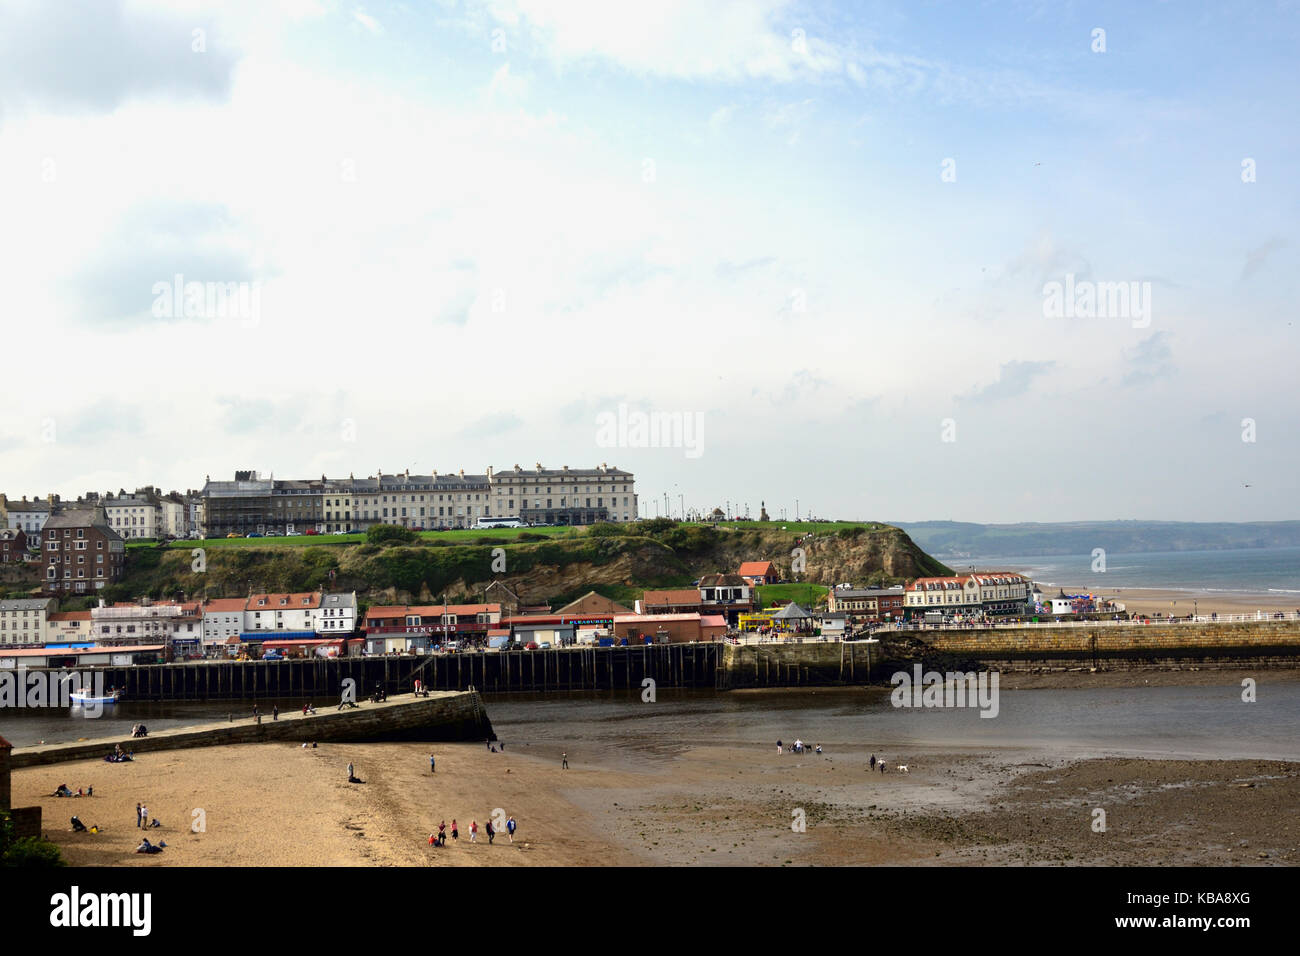 Whitby Whale Bones Stock Photos & Whitby Whale Bones Stock Images ...